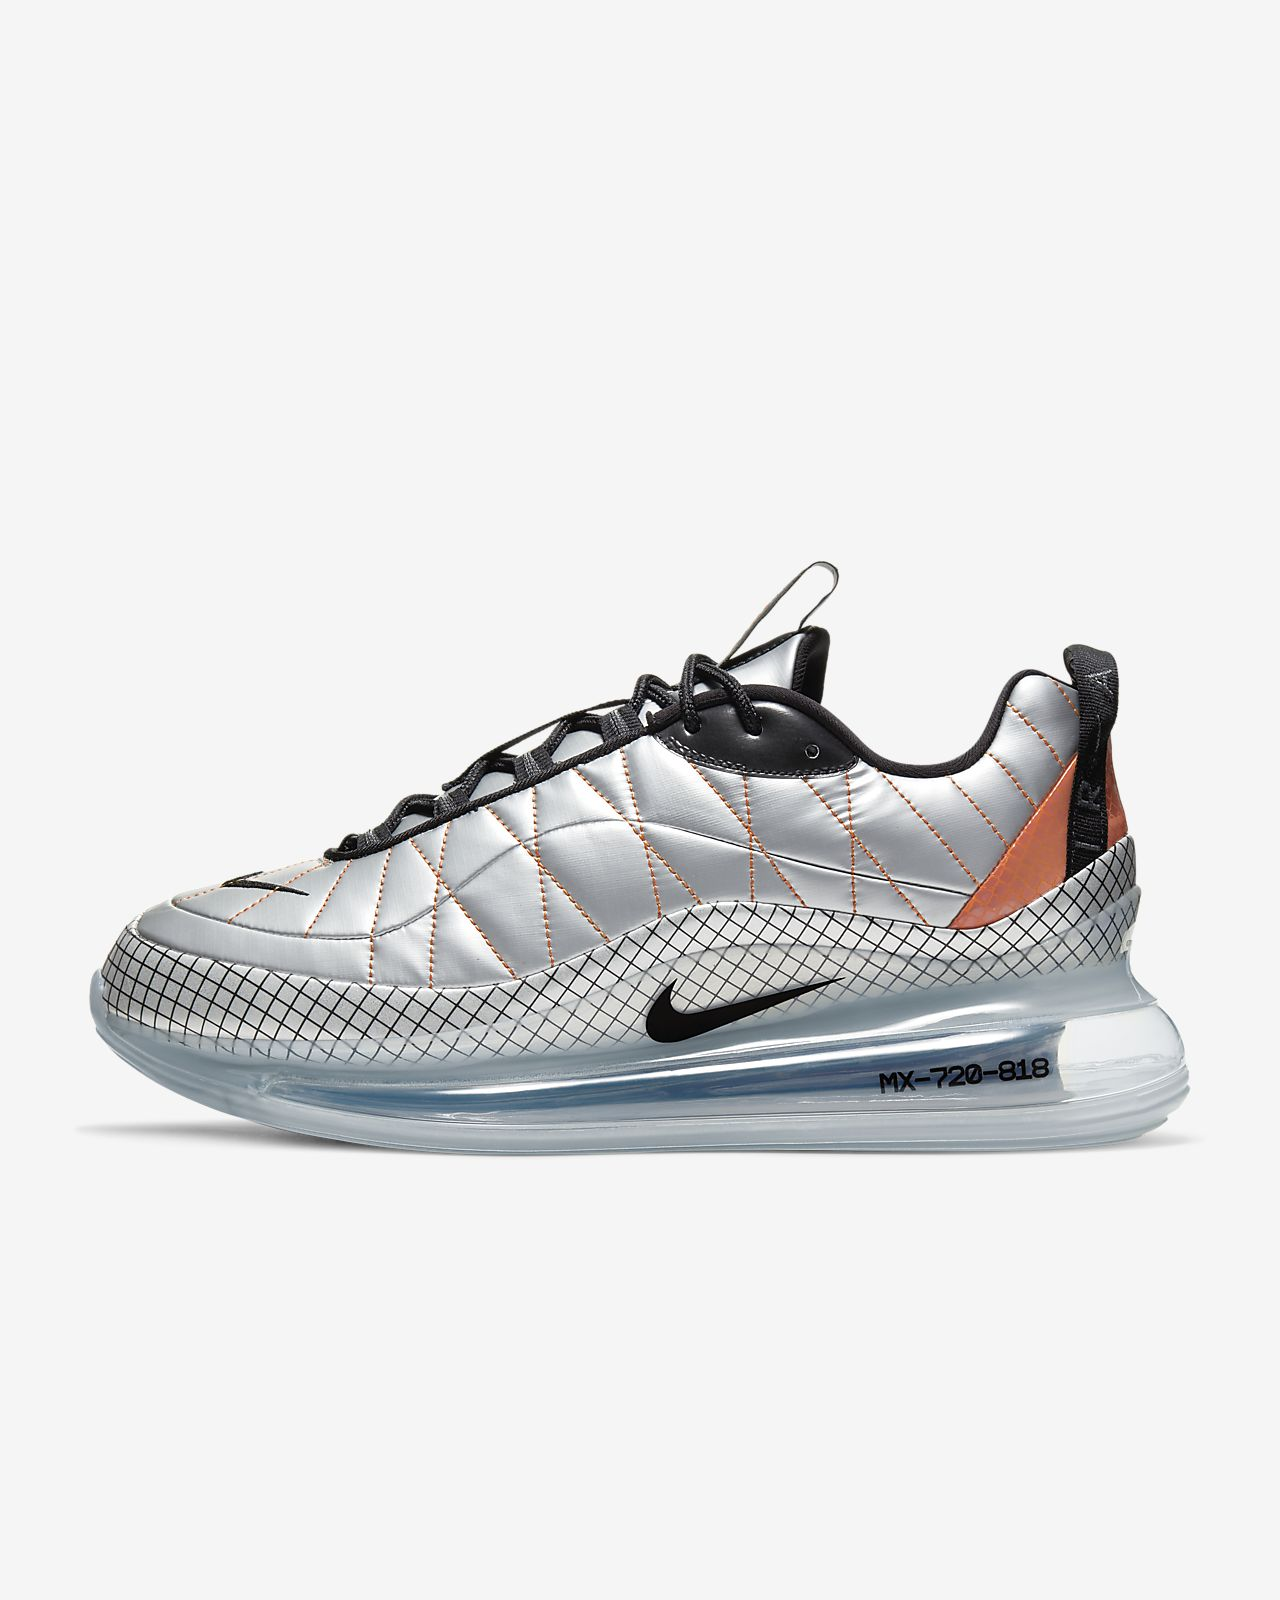 Chaussure Nike MX-720-818 pour Homme